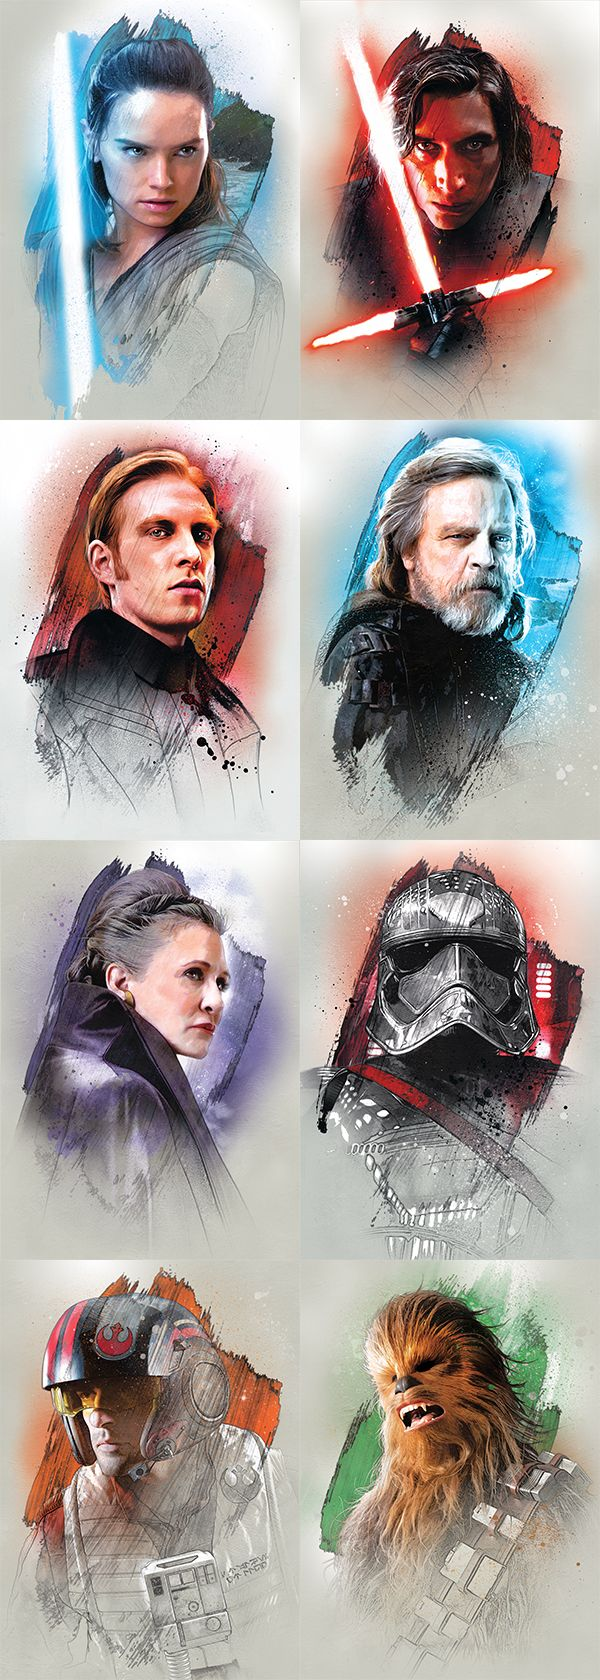 Awesome digital art from the latest Star Wars movie... Like'em? Buy'em at Displate